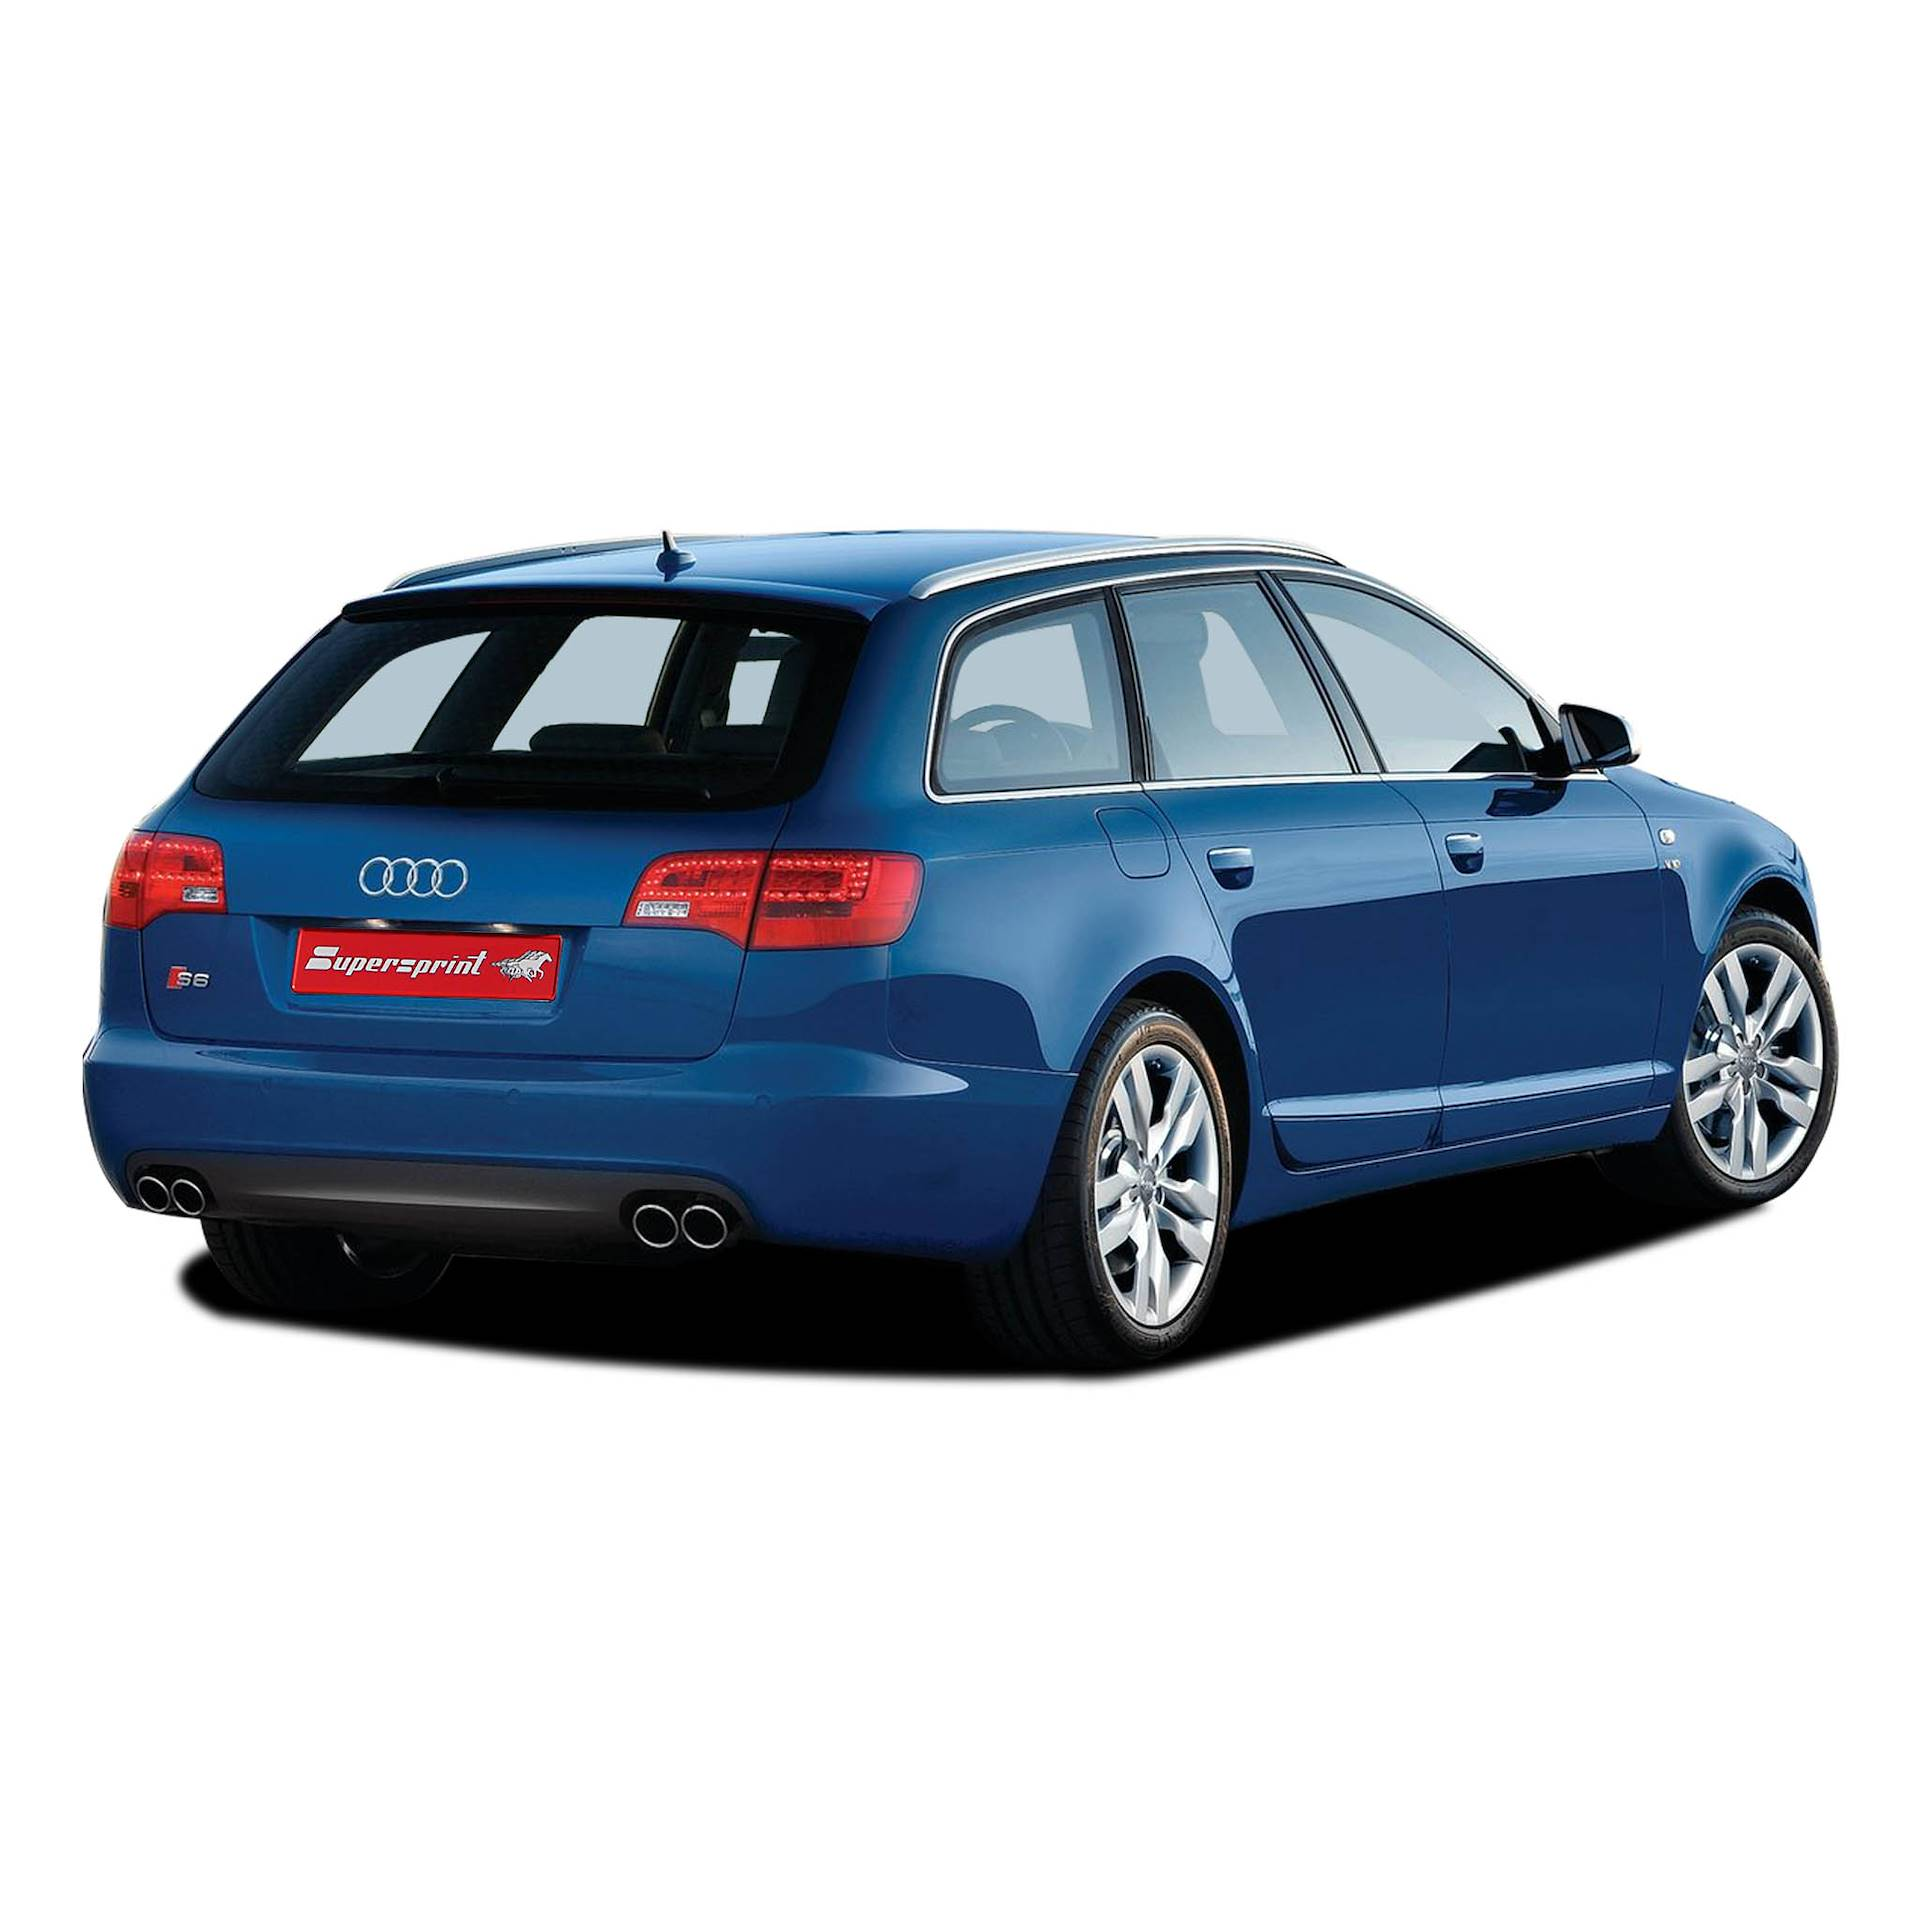 Performance Sport Exhaust For Audi S6 4F, AUDI A6 S6 C6